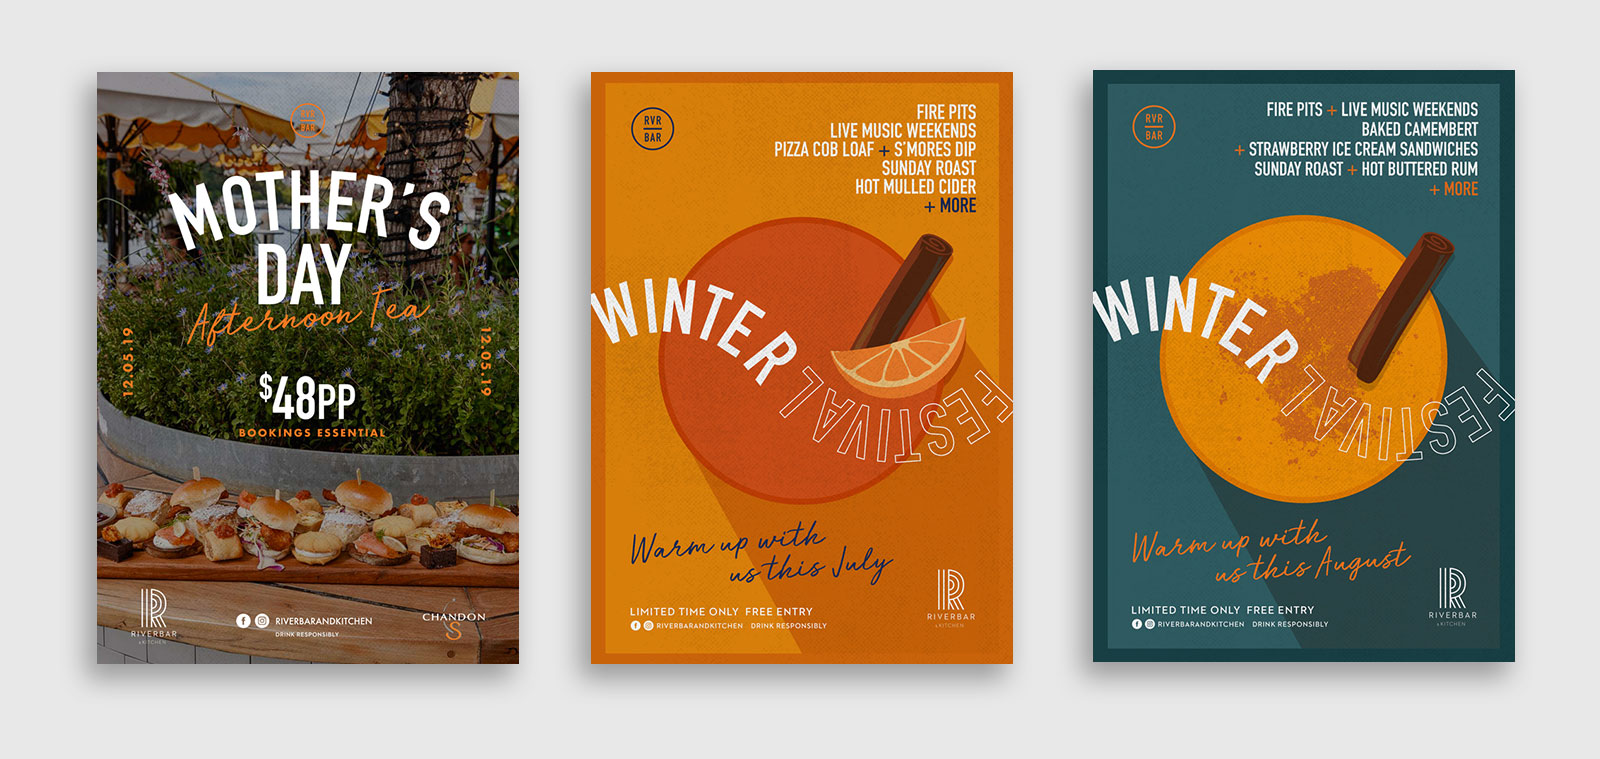 Three poster designs for Riverbar by sydney design social